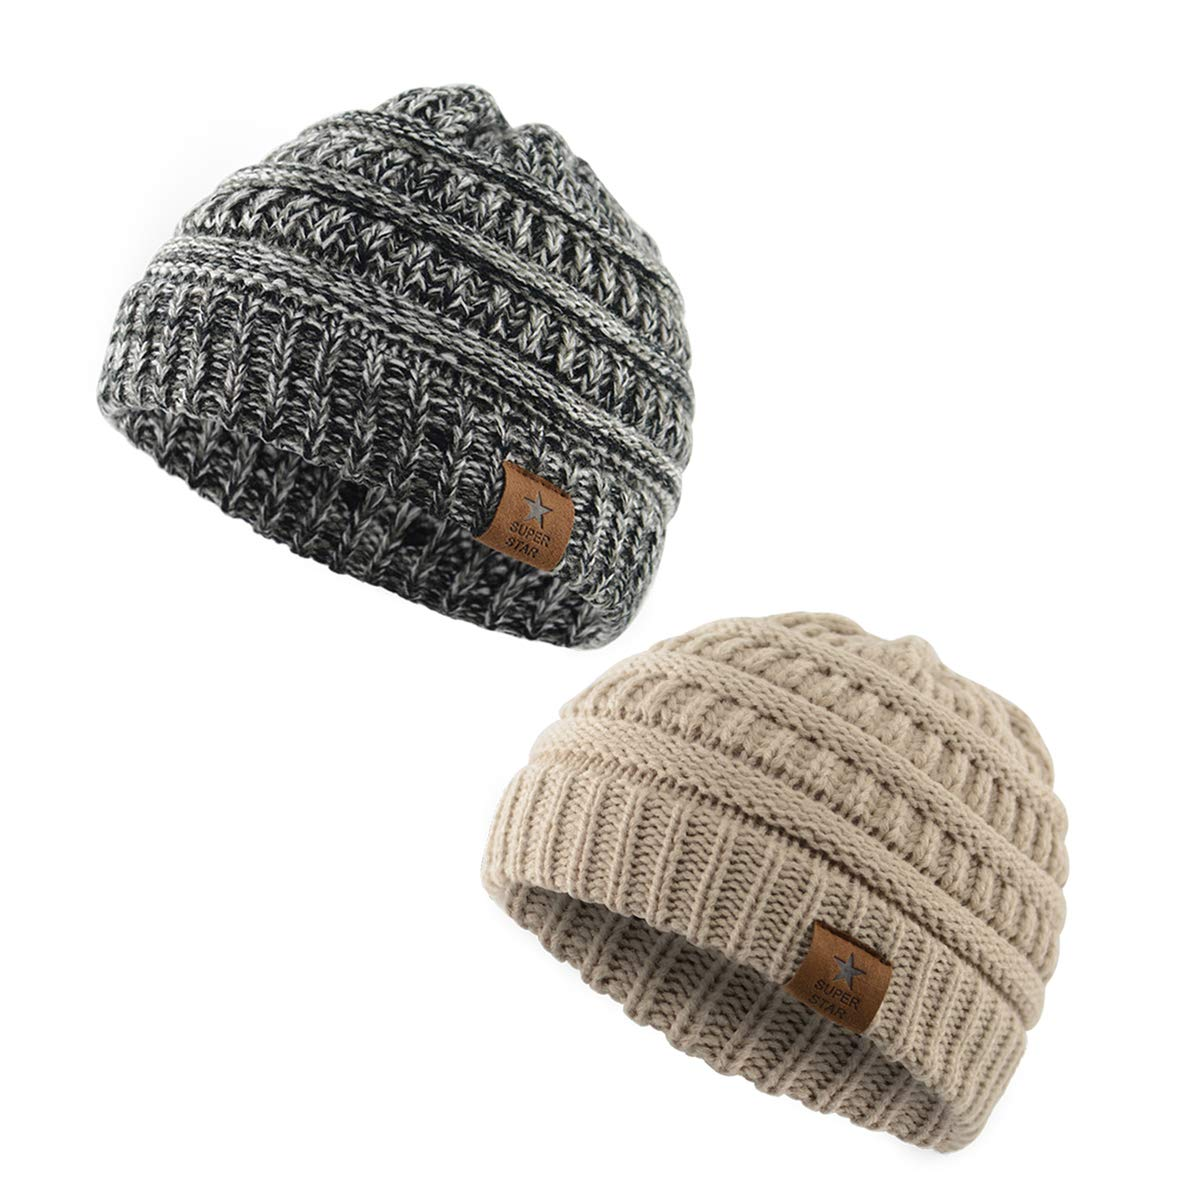 American Trends Kids Baby Boy Girl Winter Knit Warm Hats Infant Toddler Beanie Caps PAWPAB18S2580AXG3P